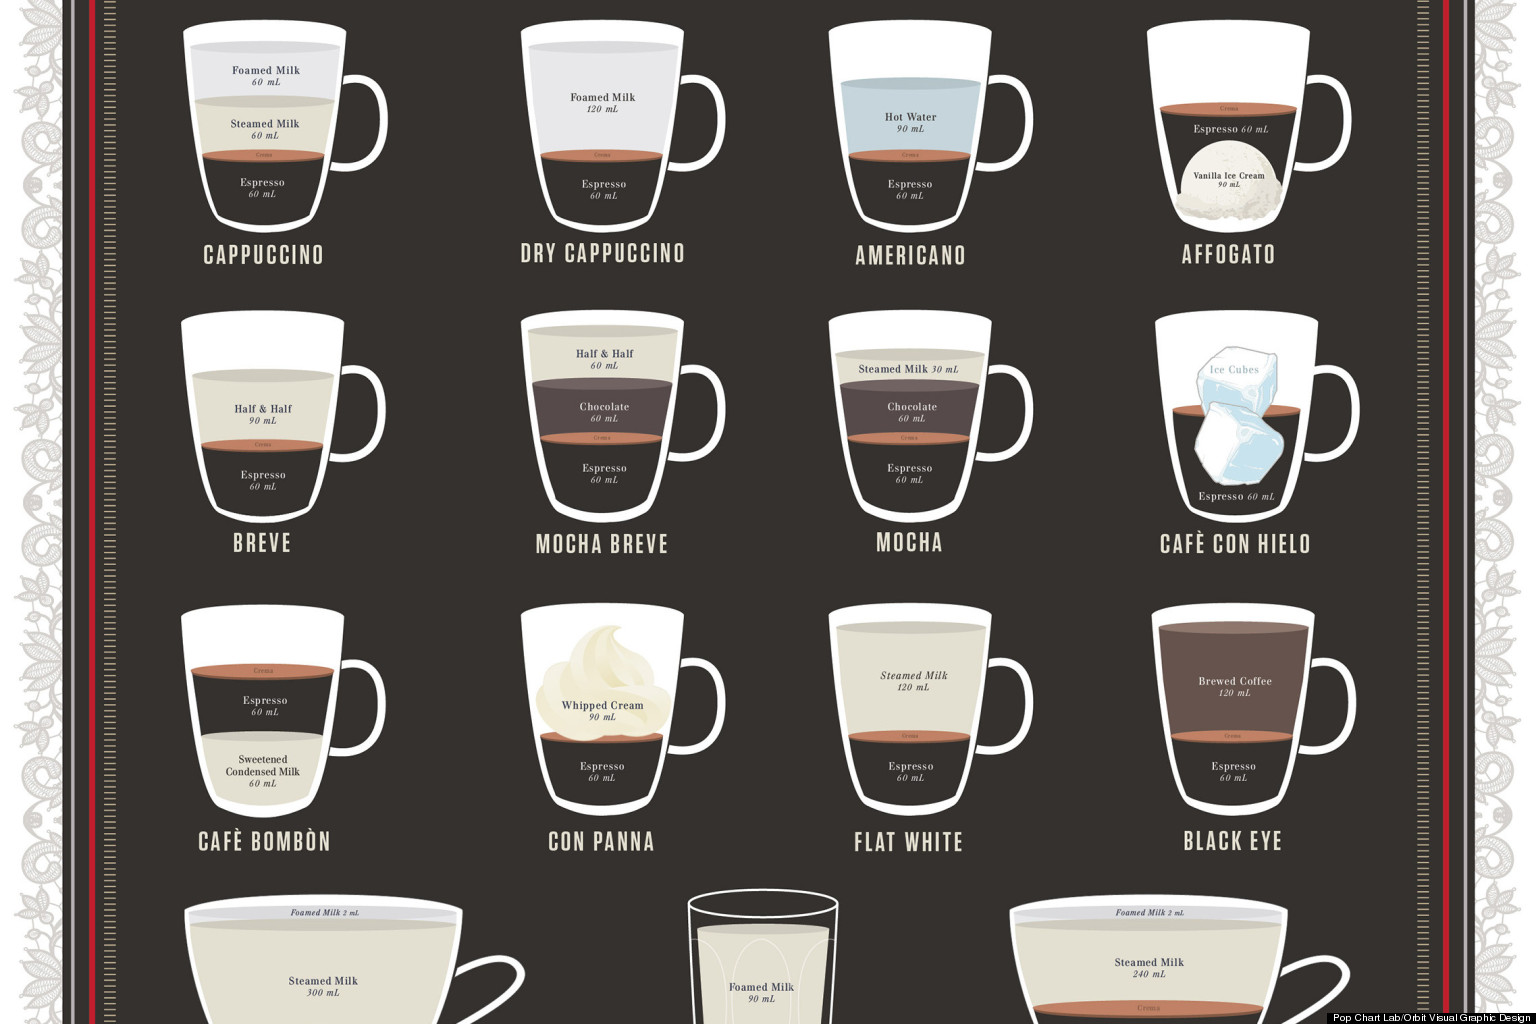 Espresso Chart Breaks Down Ingredient Ratios For 23 Drinks